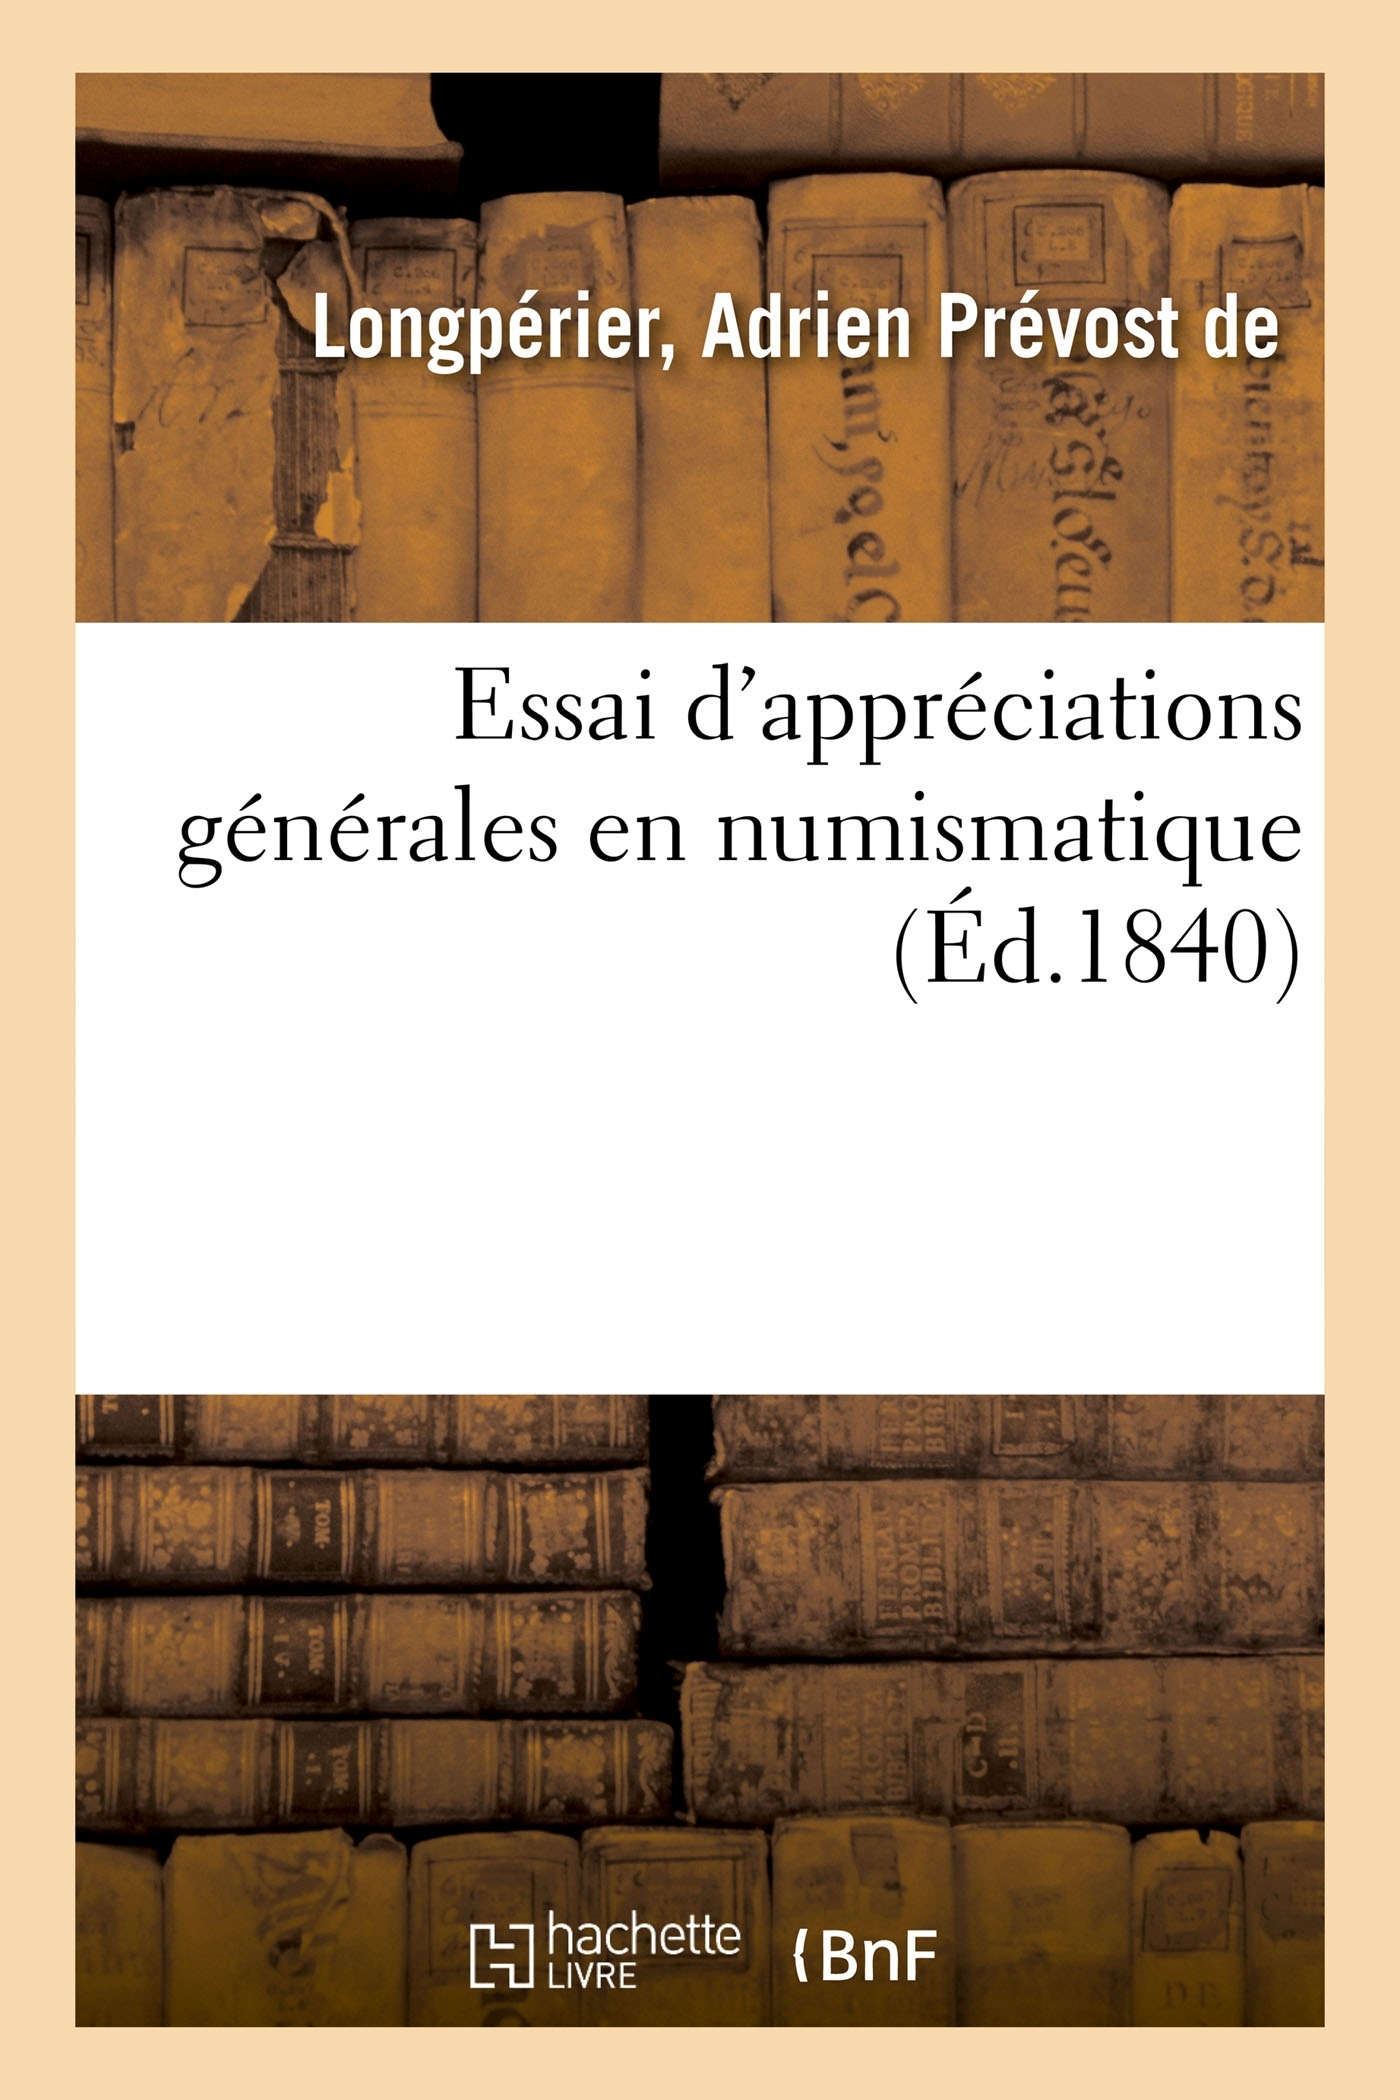 ESSAI D'APPRECIATIONS GENERALES EN NUMISMATIQUE